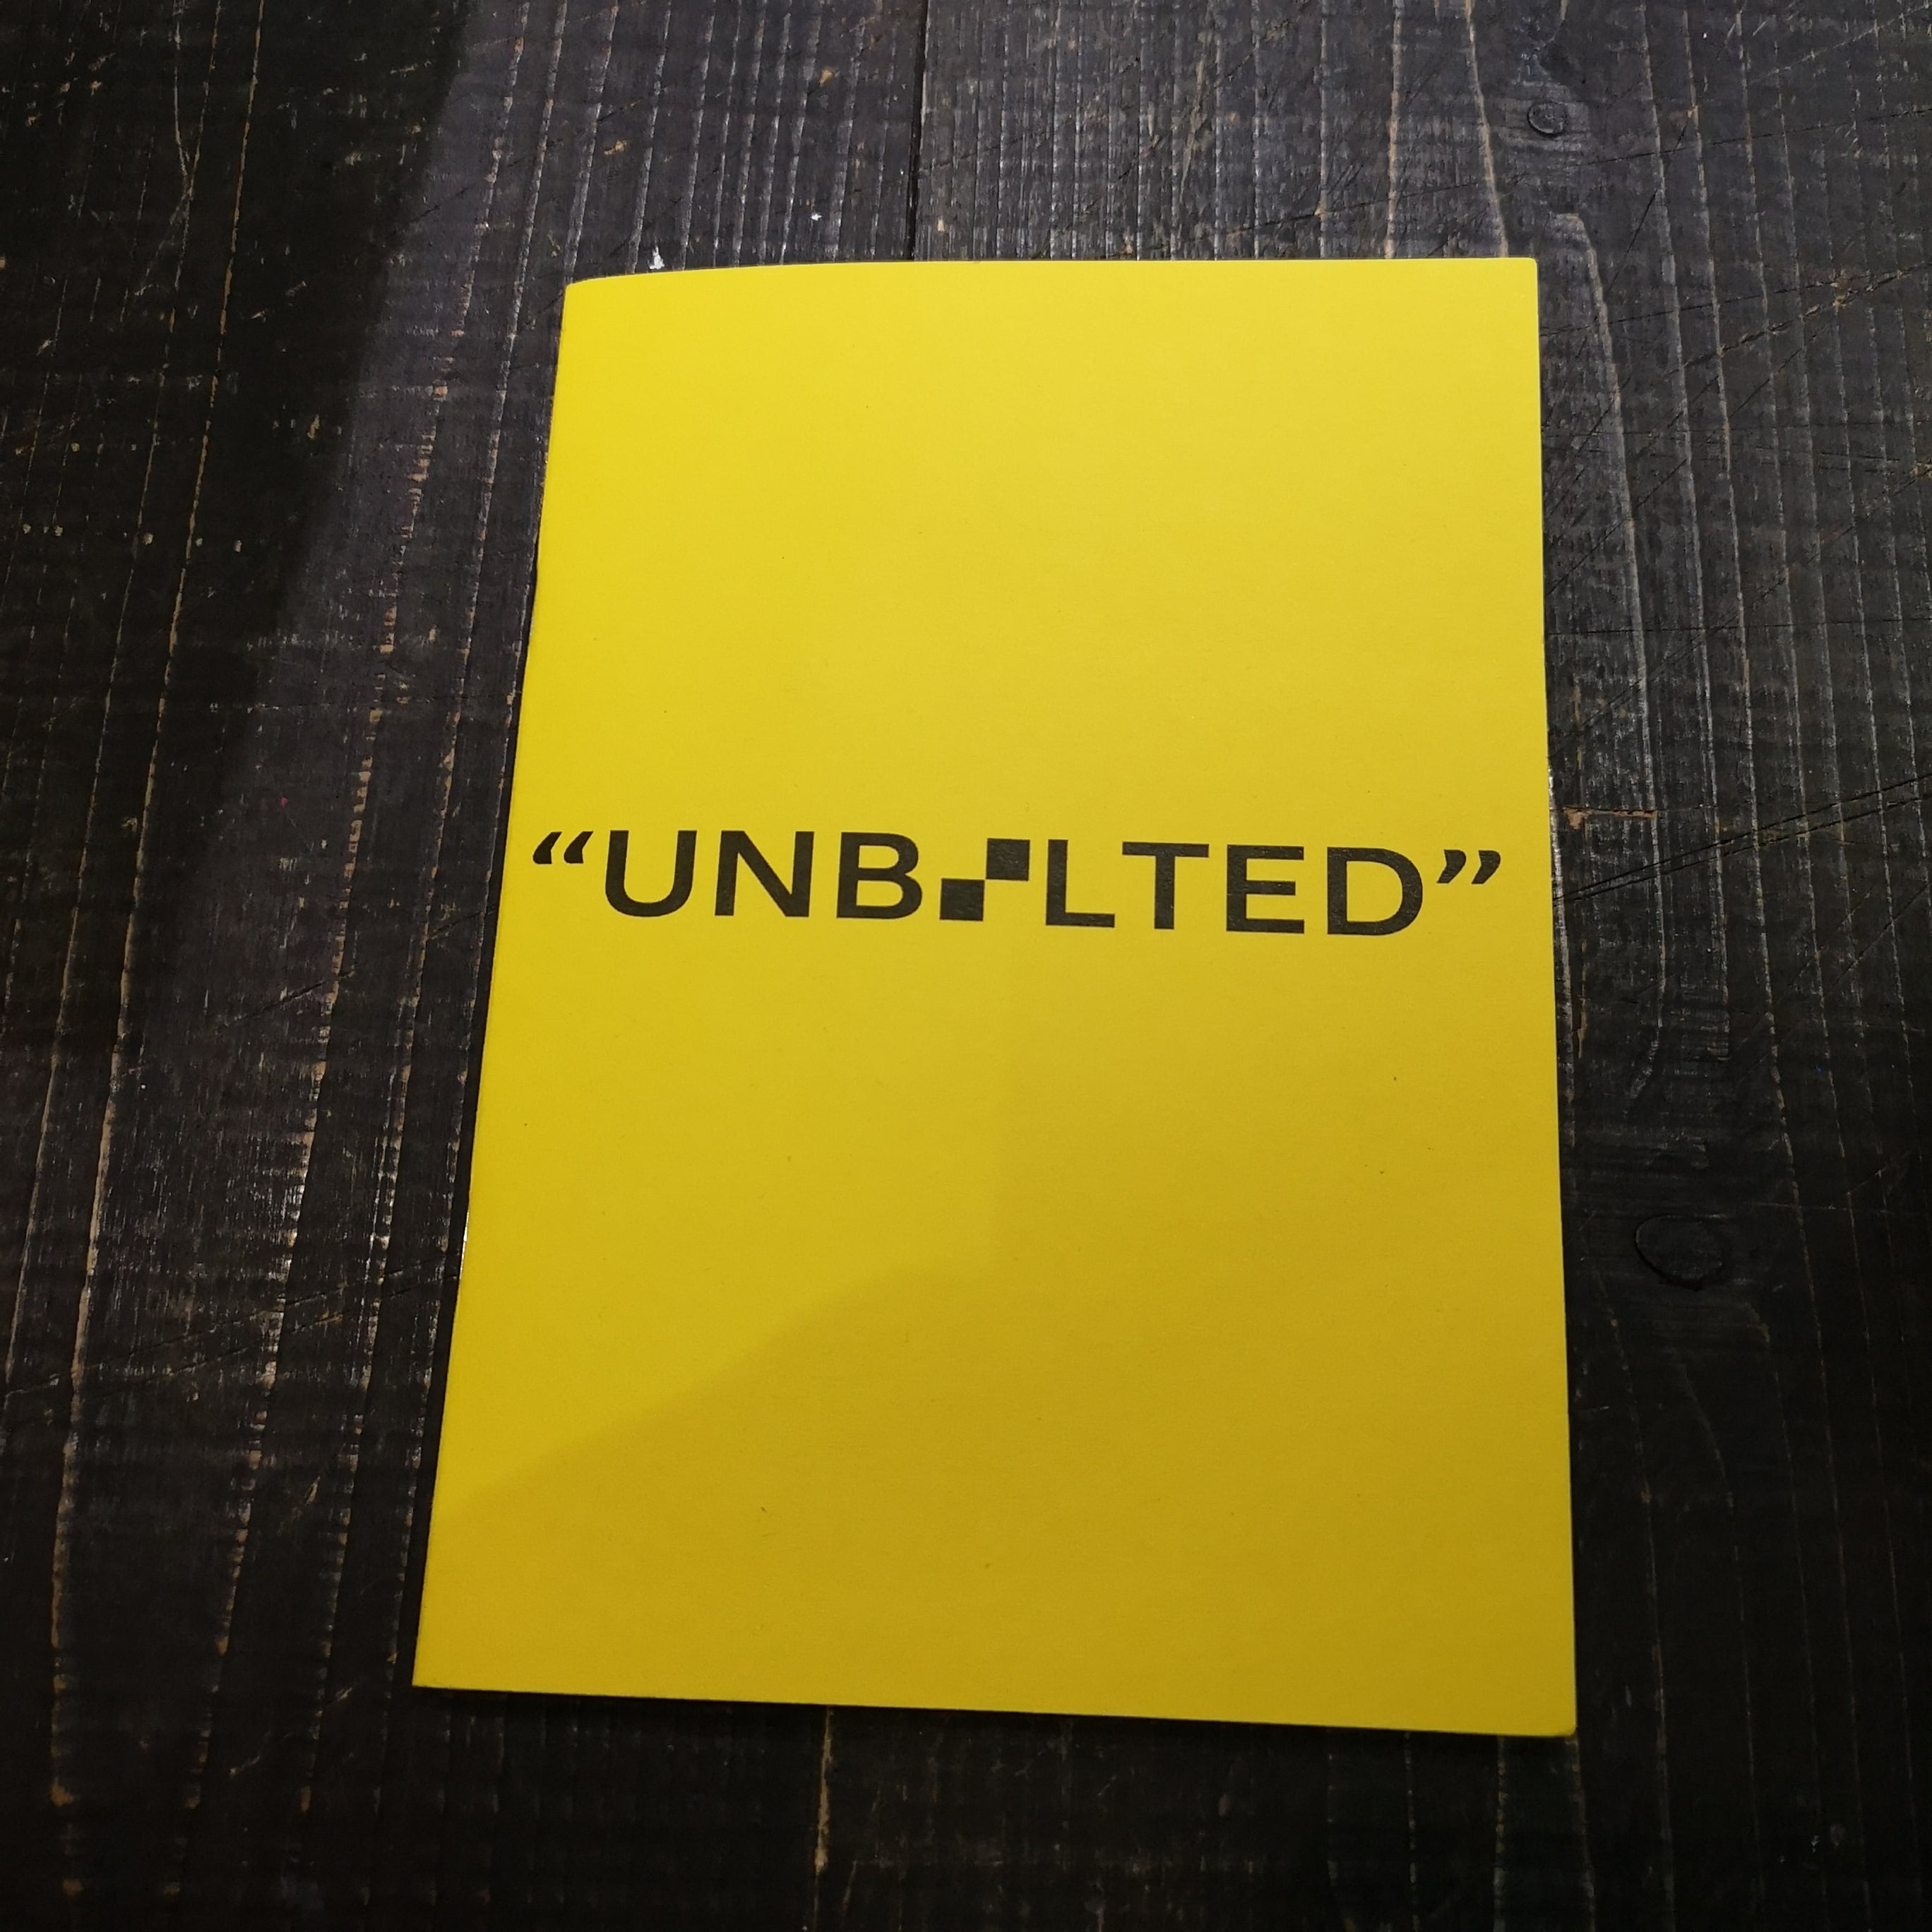 """UNBOLTED """"CARZINE2019"""" Artwork by FACE"""